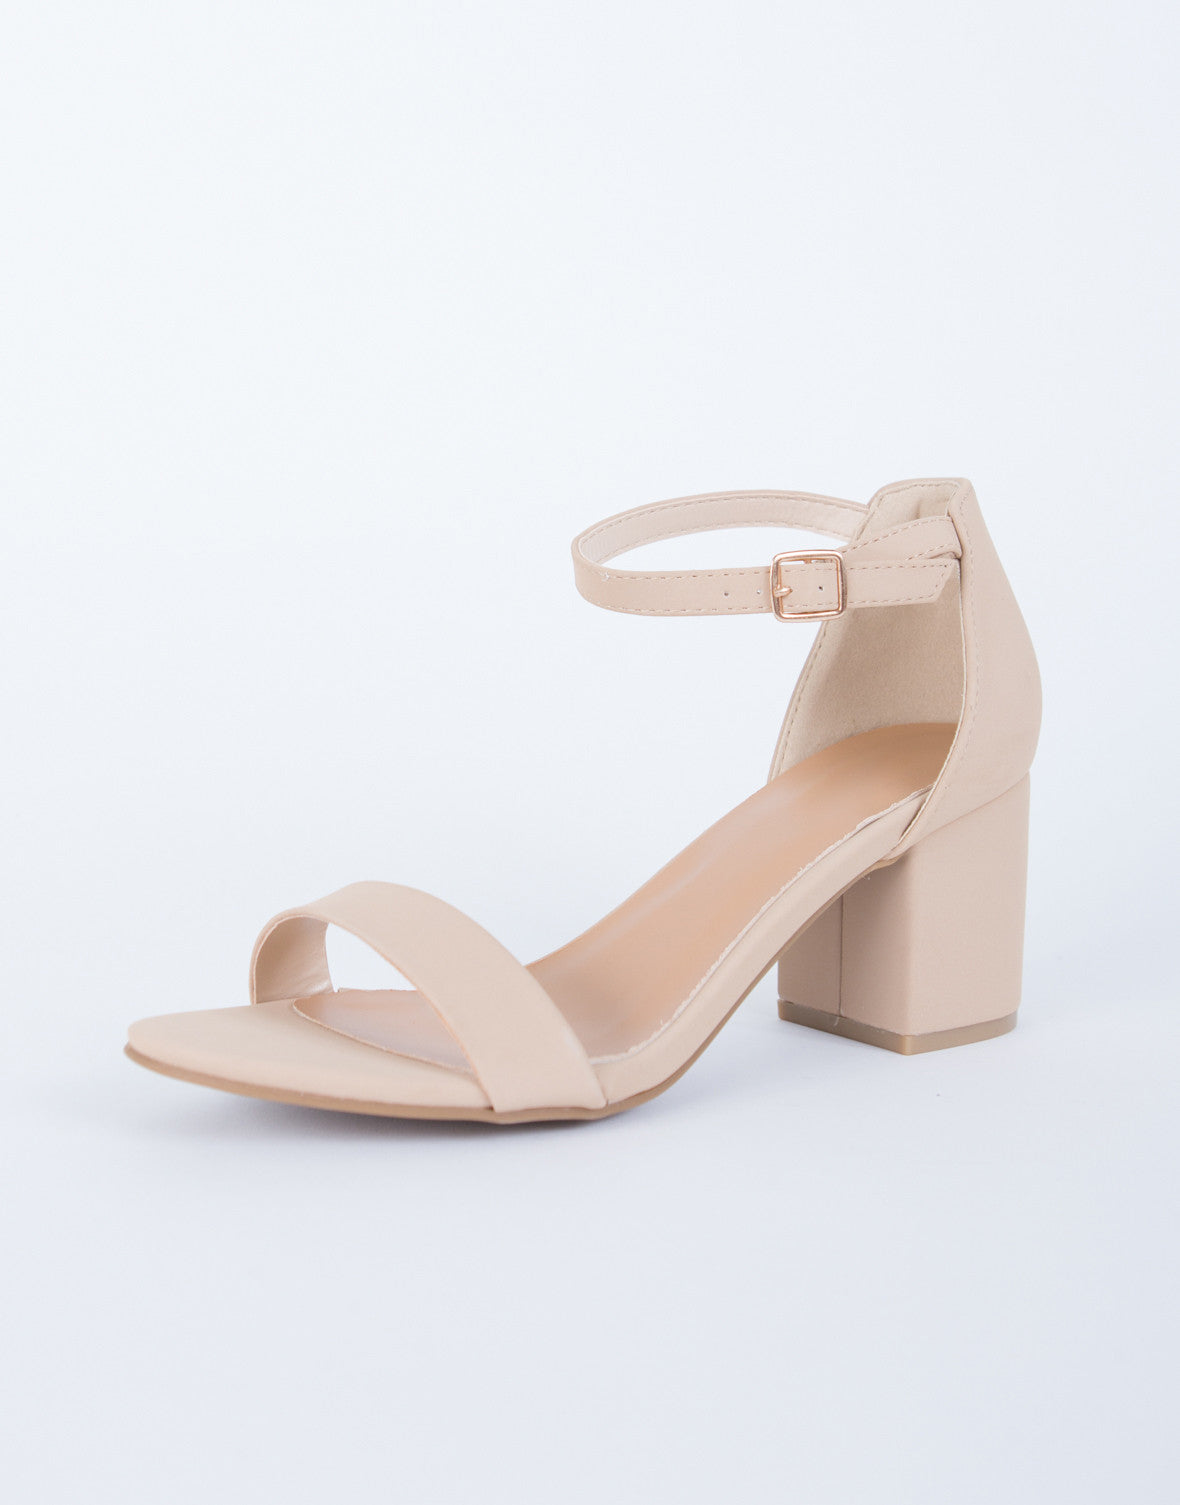 Ankle Strapped Block Heel Sandals